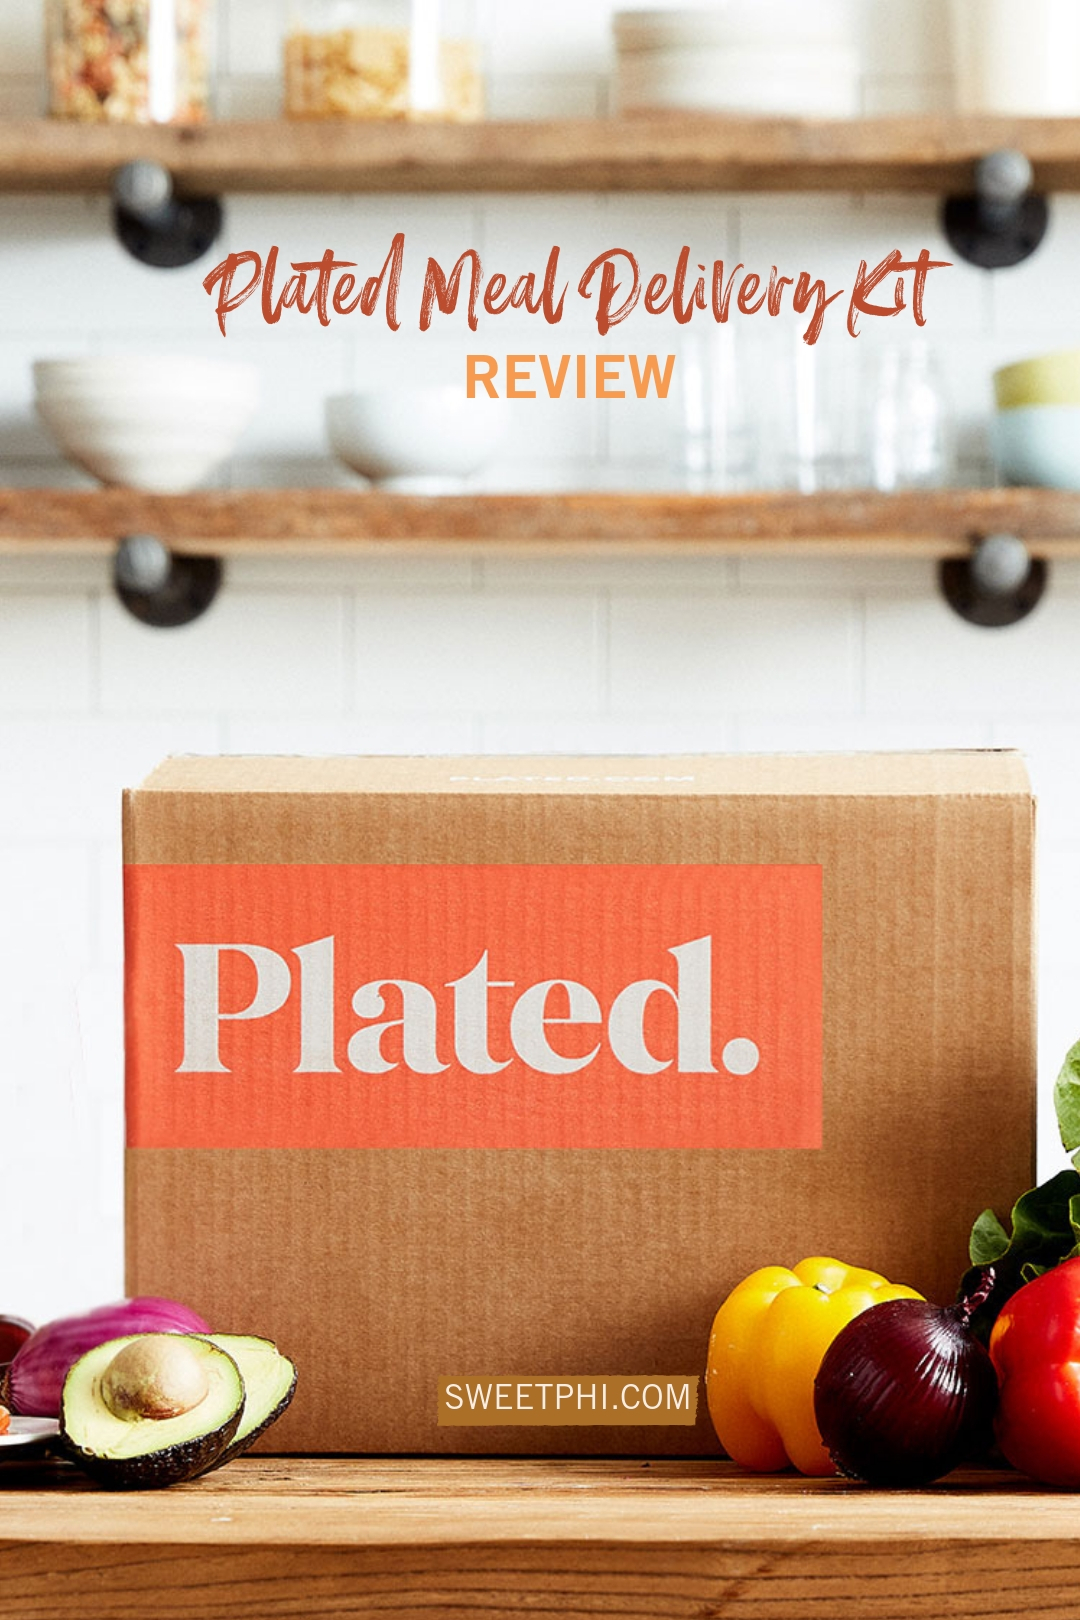 Plated meal delivery kit review